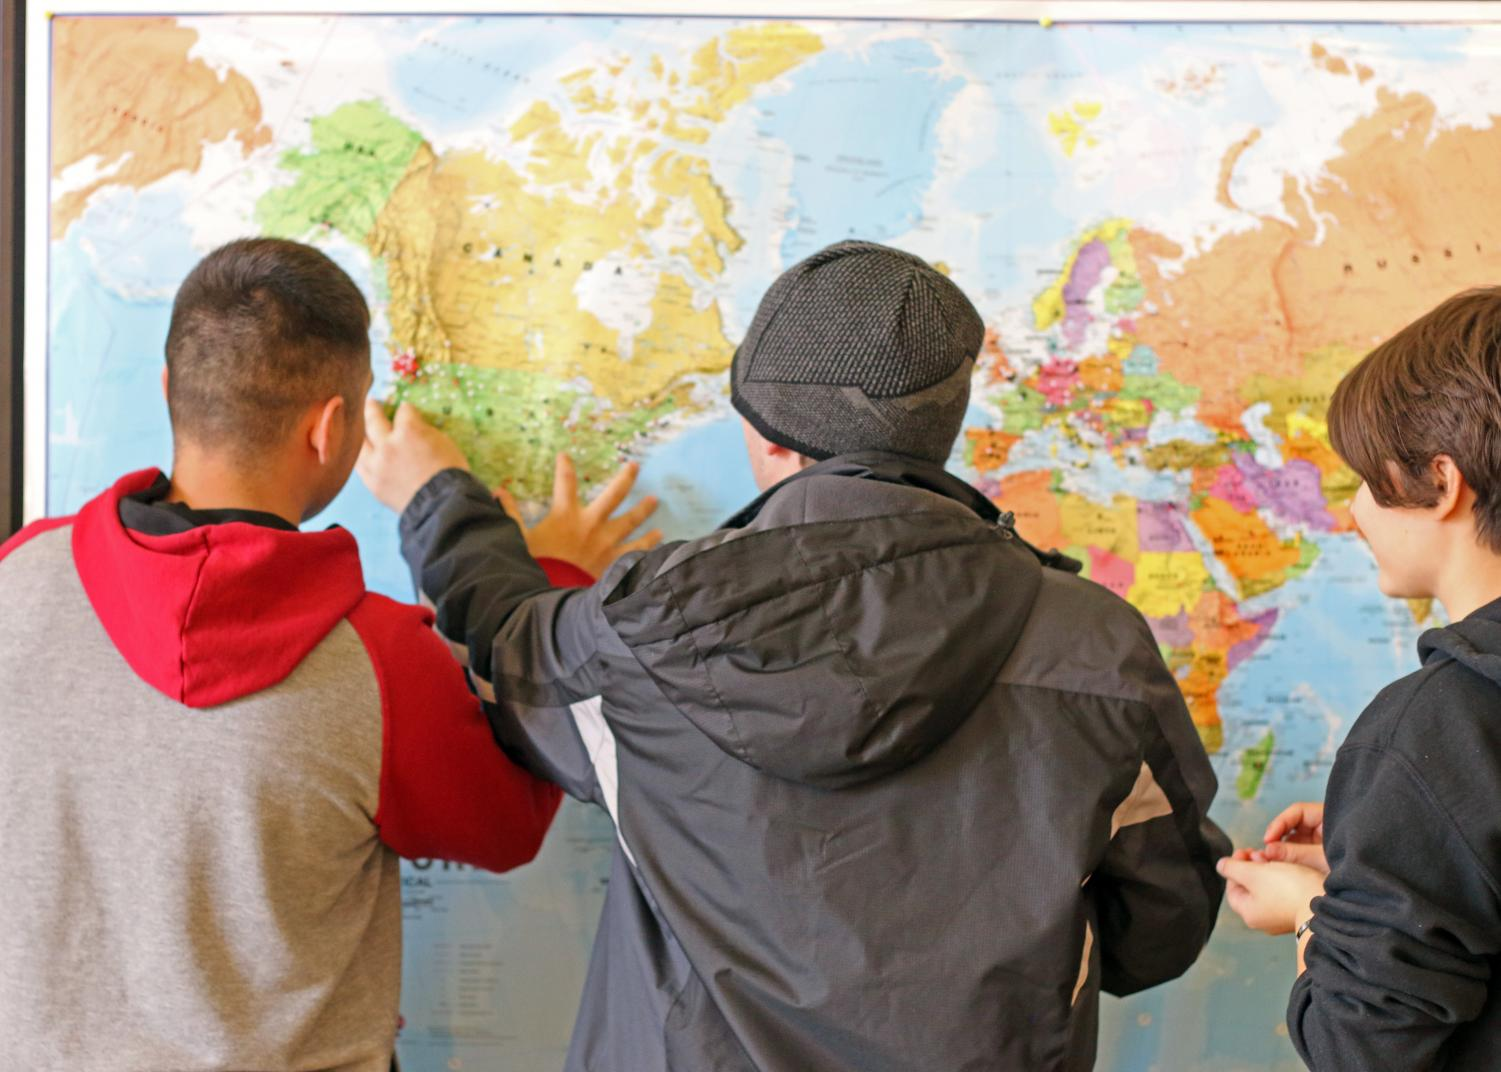 (From left to right) Pablo Ruelas, Job Place and Claire Olney have fun with the world map in the SURC by marking places they have been. have lived, and would like to go.